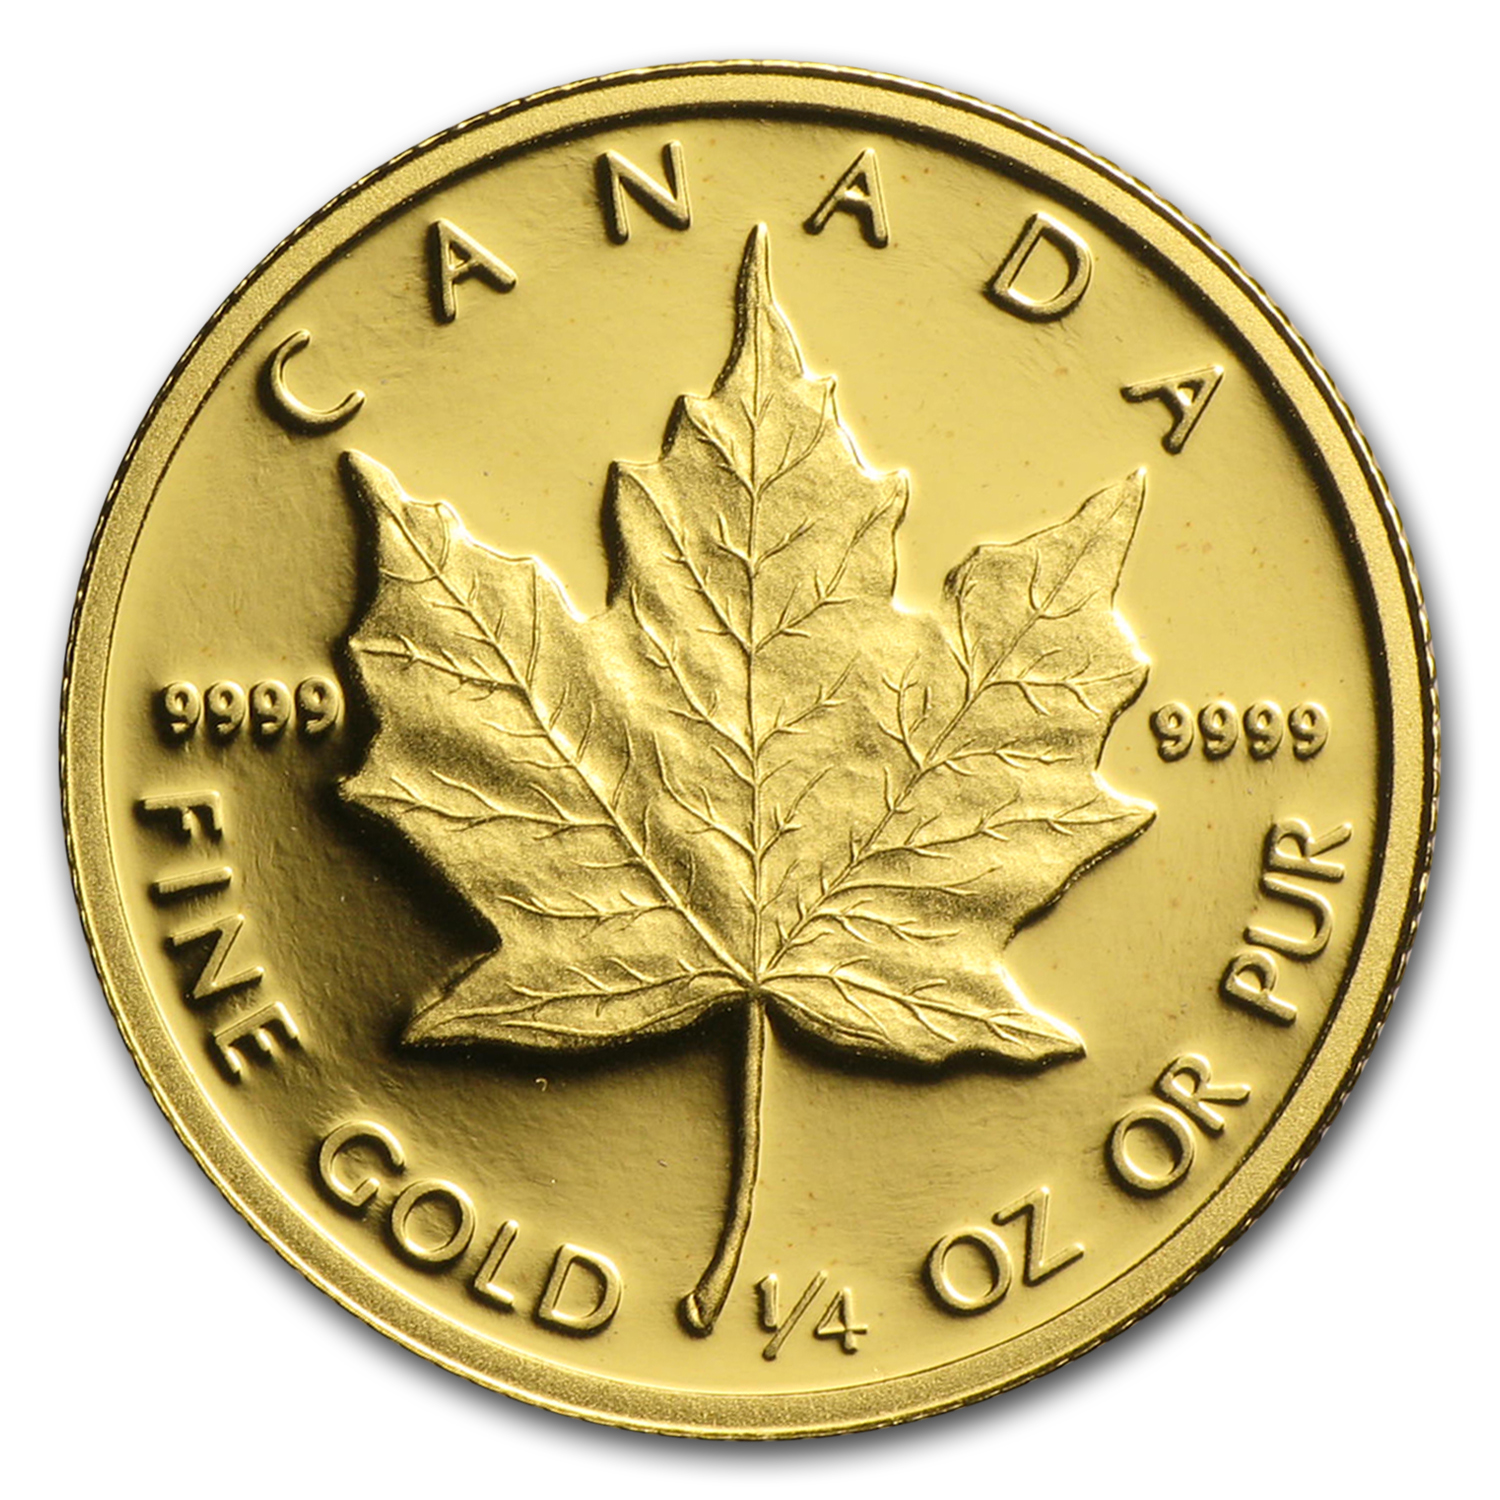 1989 Canada 1/4 oz Proof Gold Maple Leaf